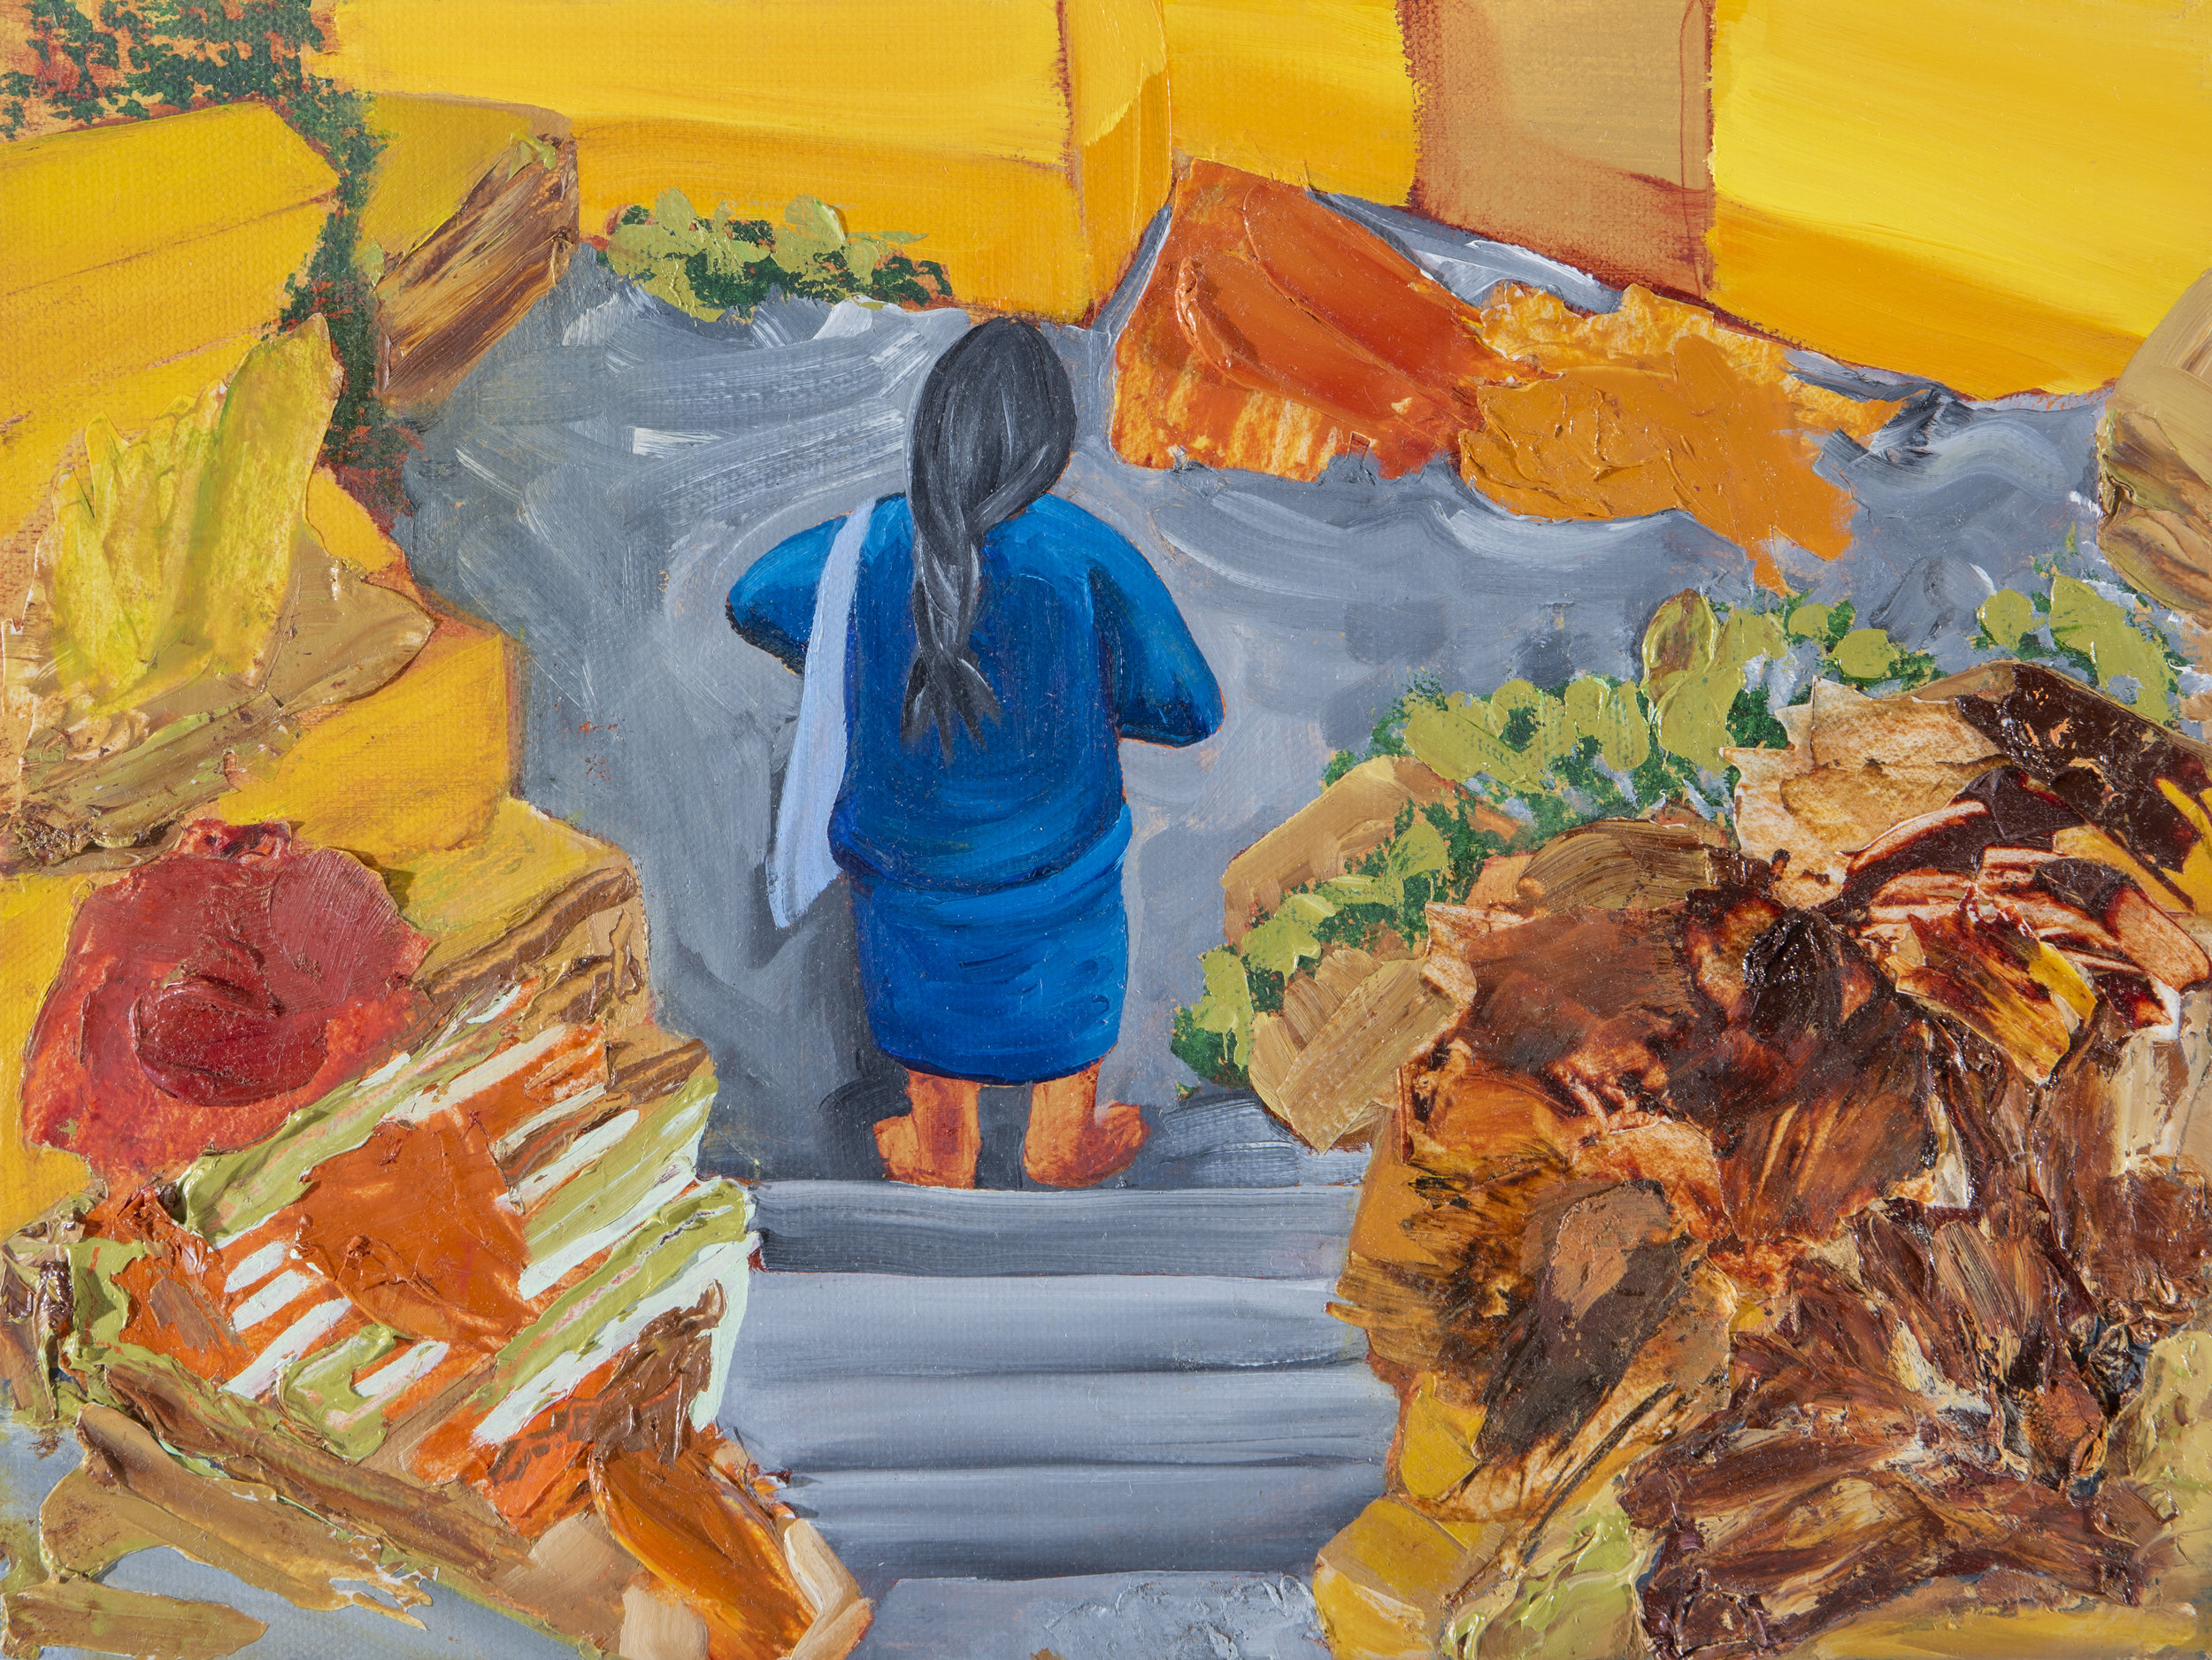 Las escaleras / The Stairs (right panel)